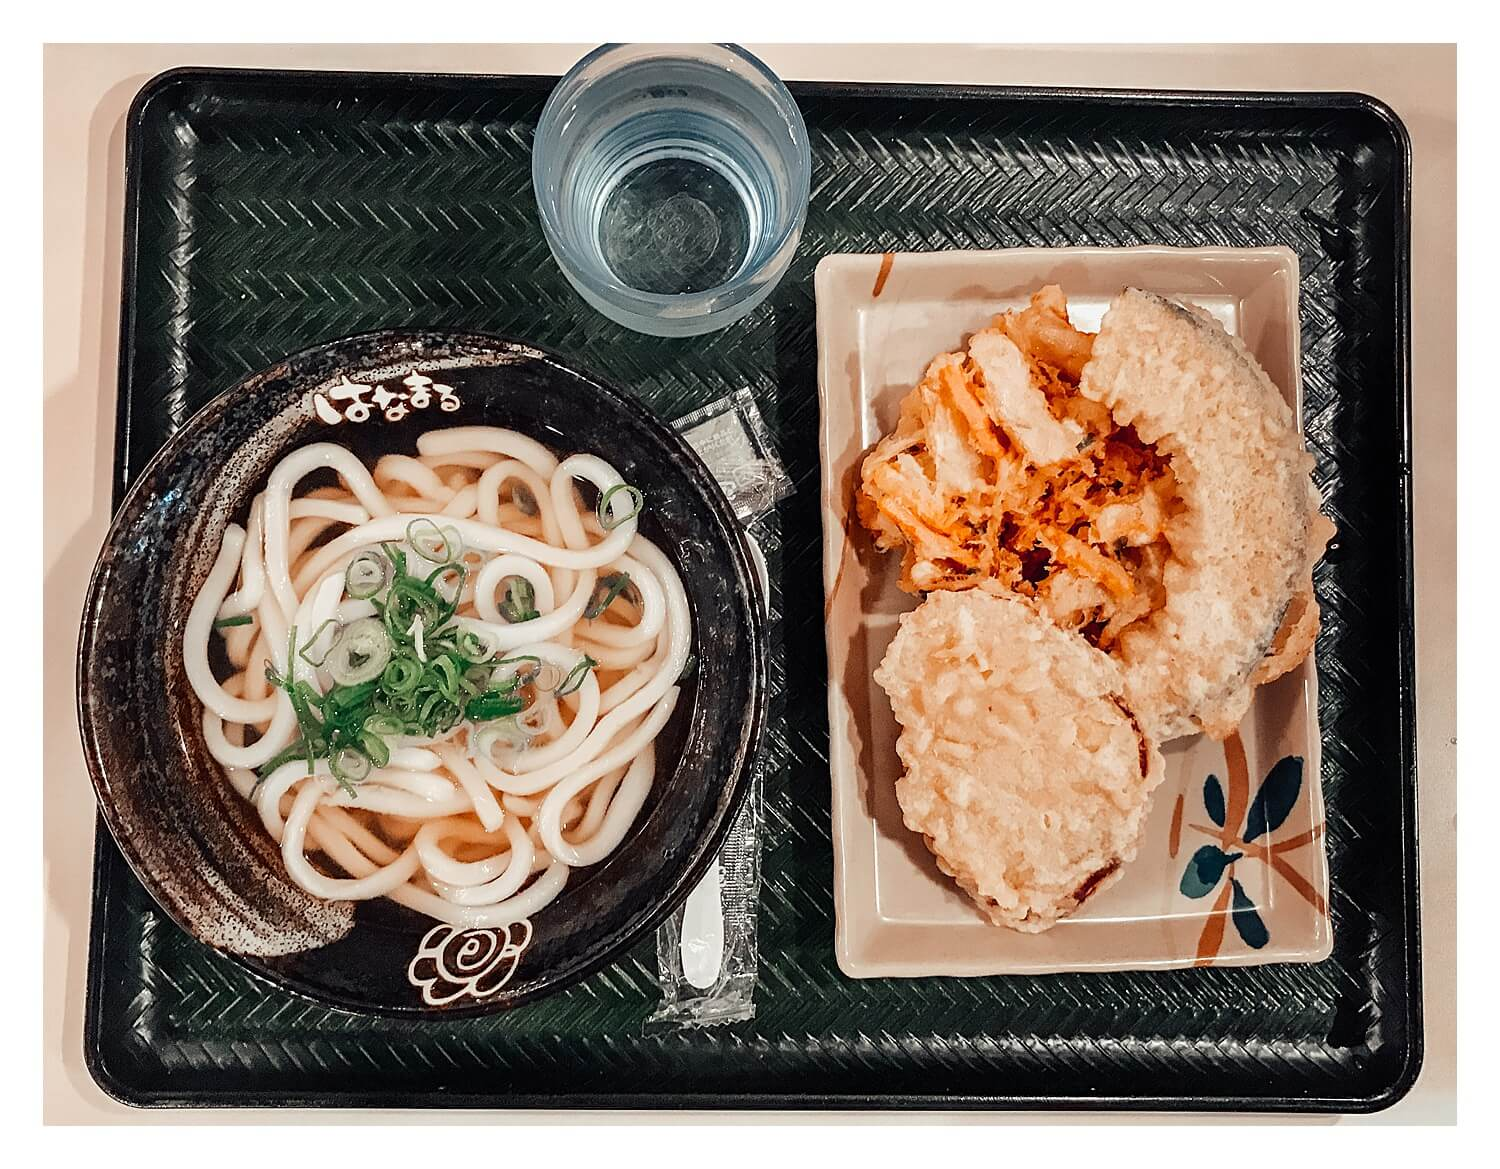 Tokyo food guide - my recommendations for restaurants and street food in the capital of Japan. The best ramen place, sushi, Japanese BBQ, westeren food and sweets!!